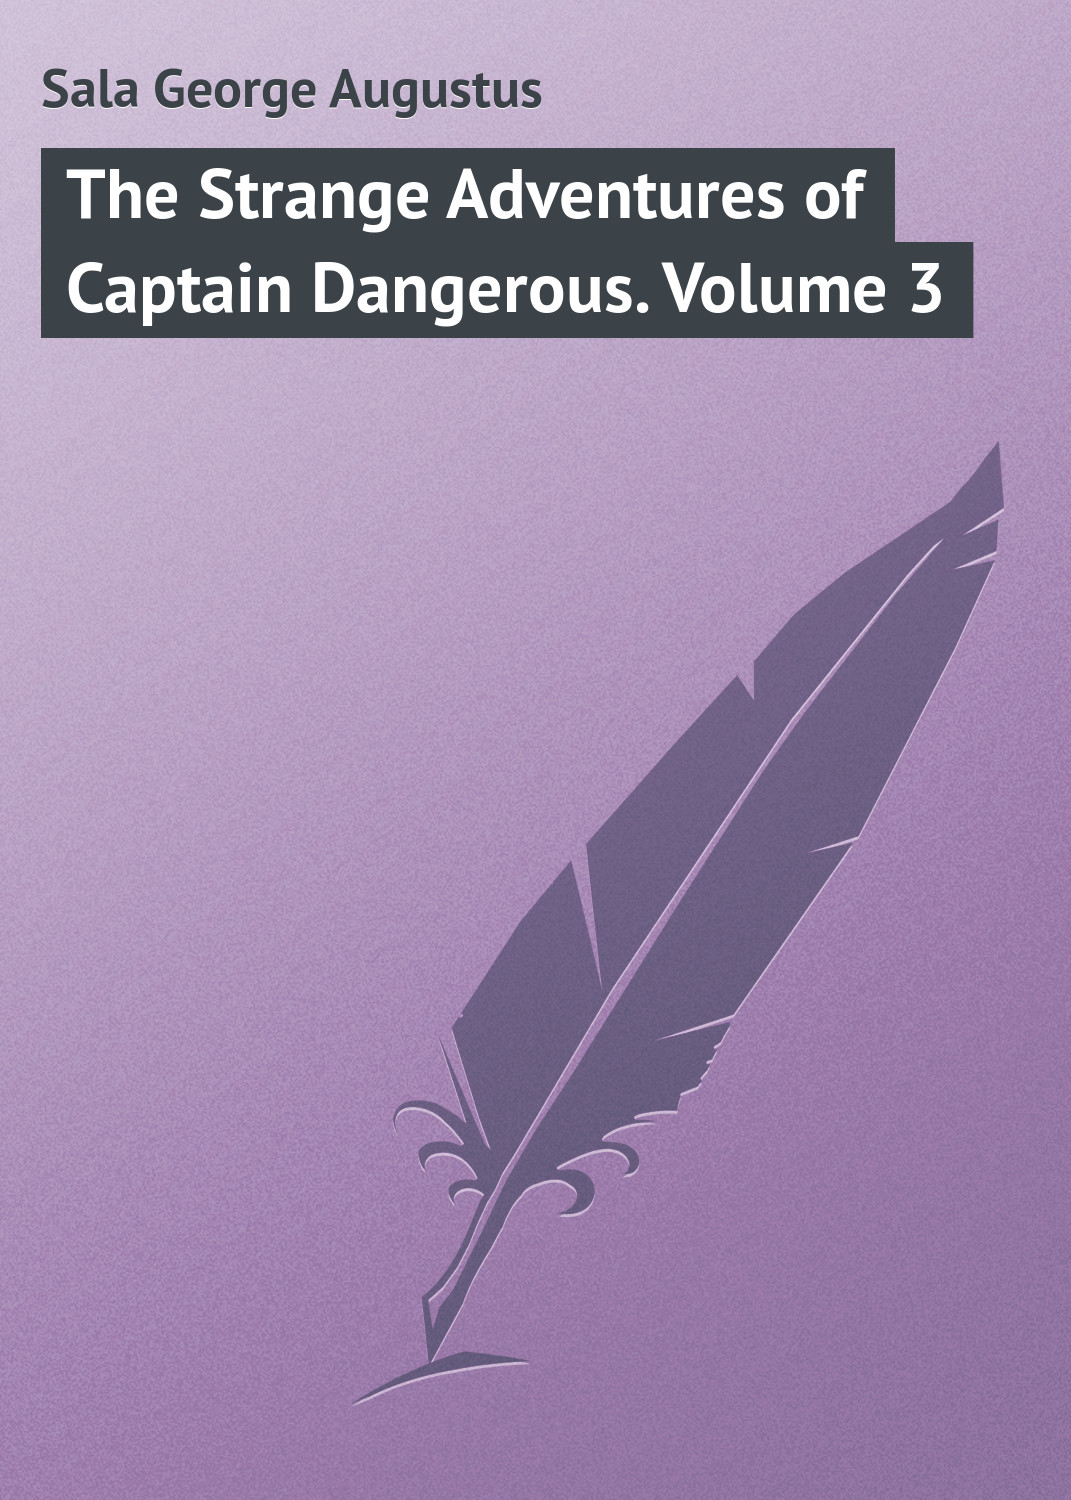 Sala George Augustus The Strange Adventures of Captain Dangerous. Volume 3